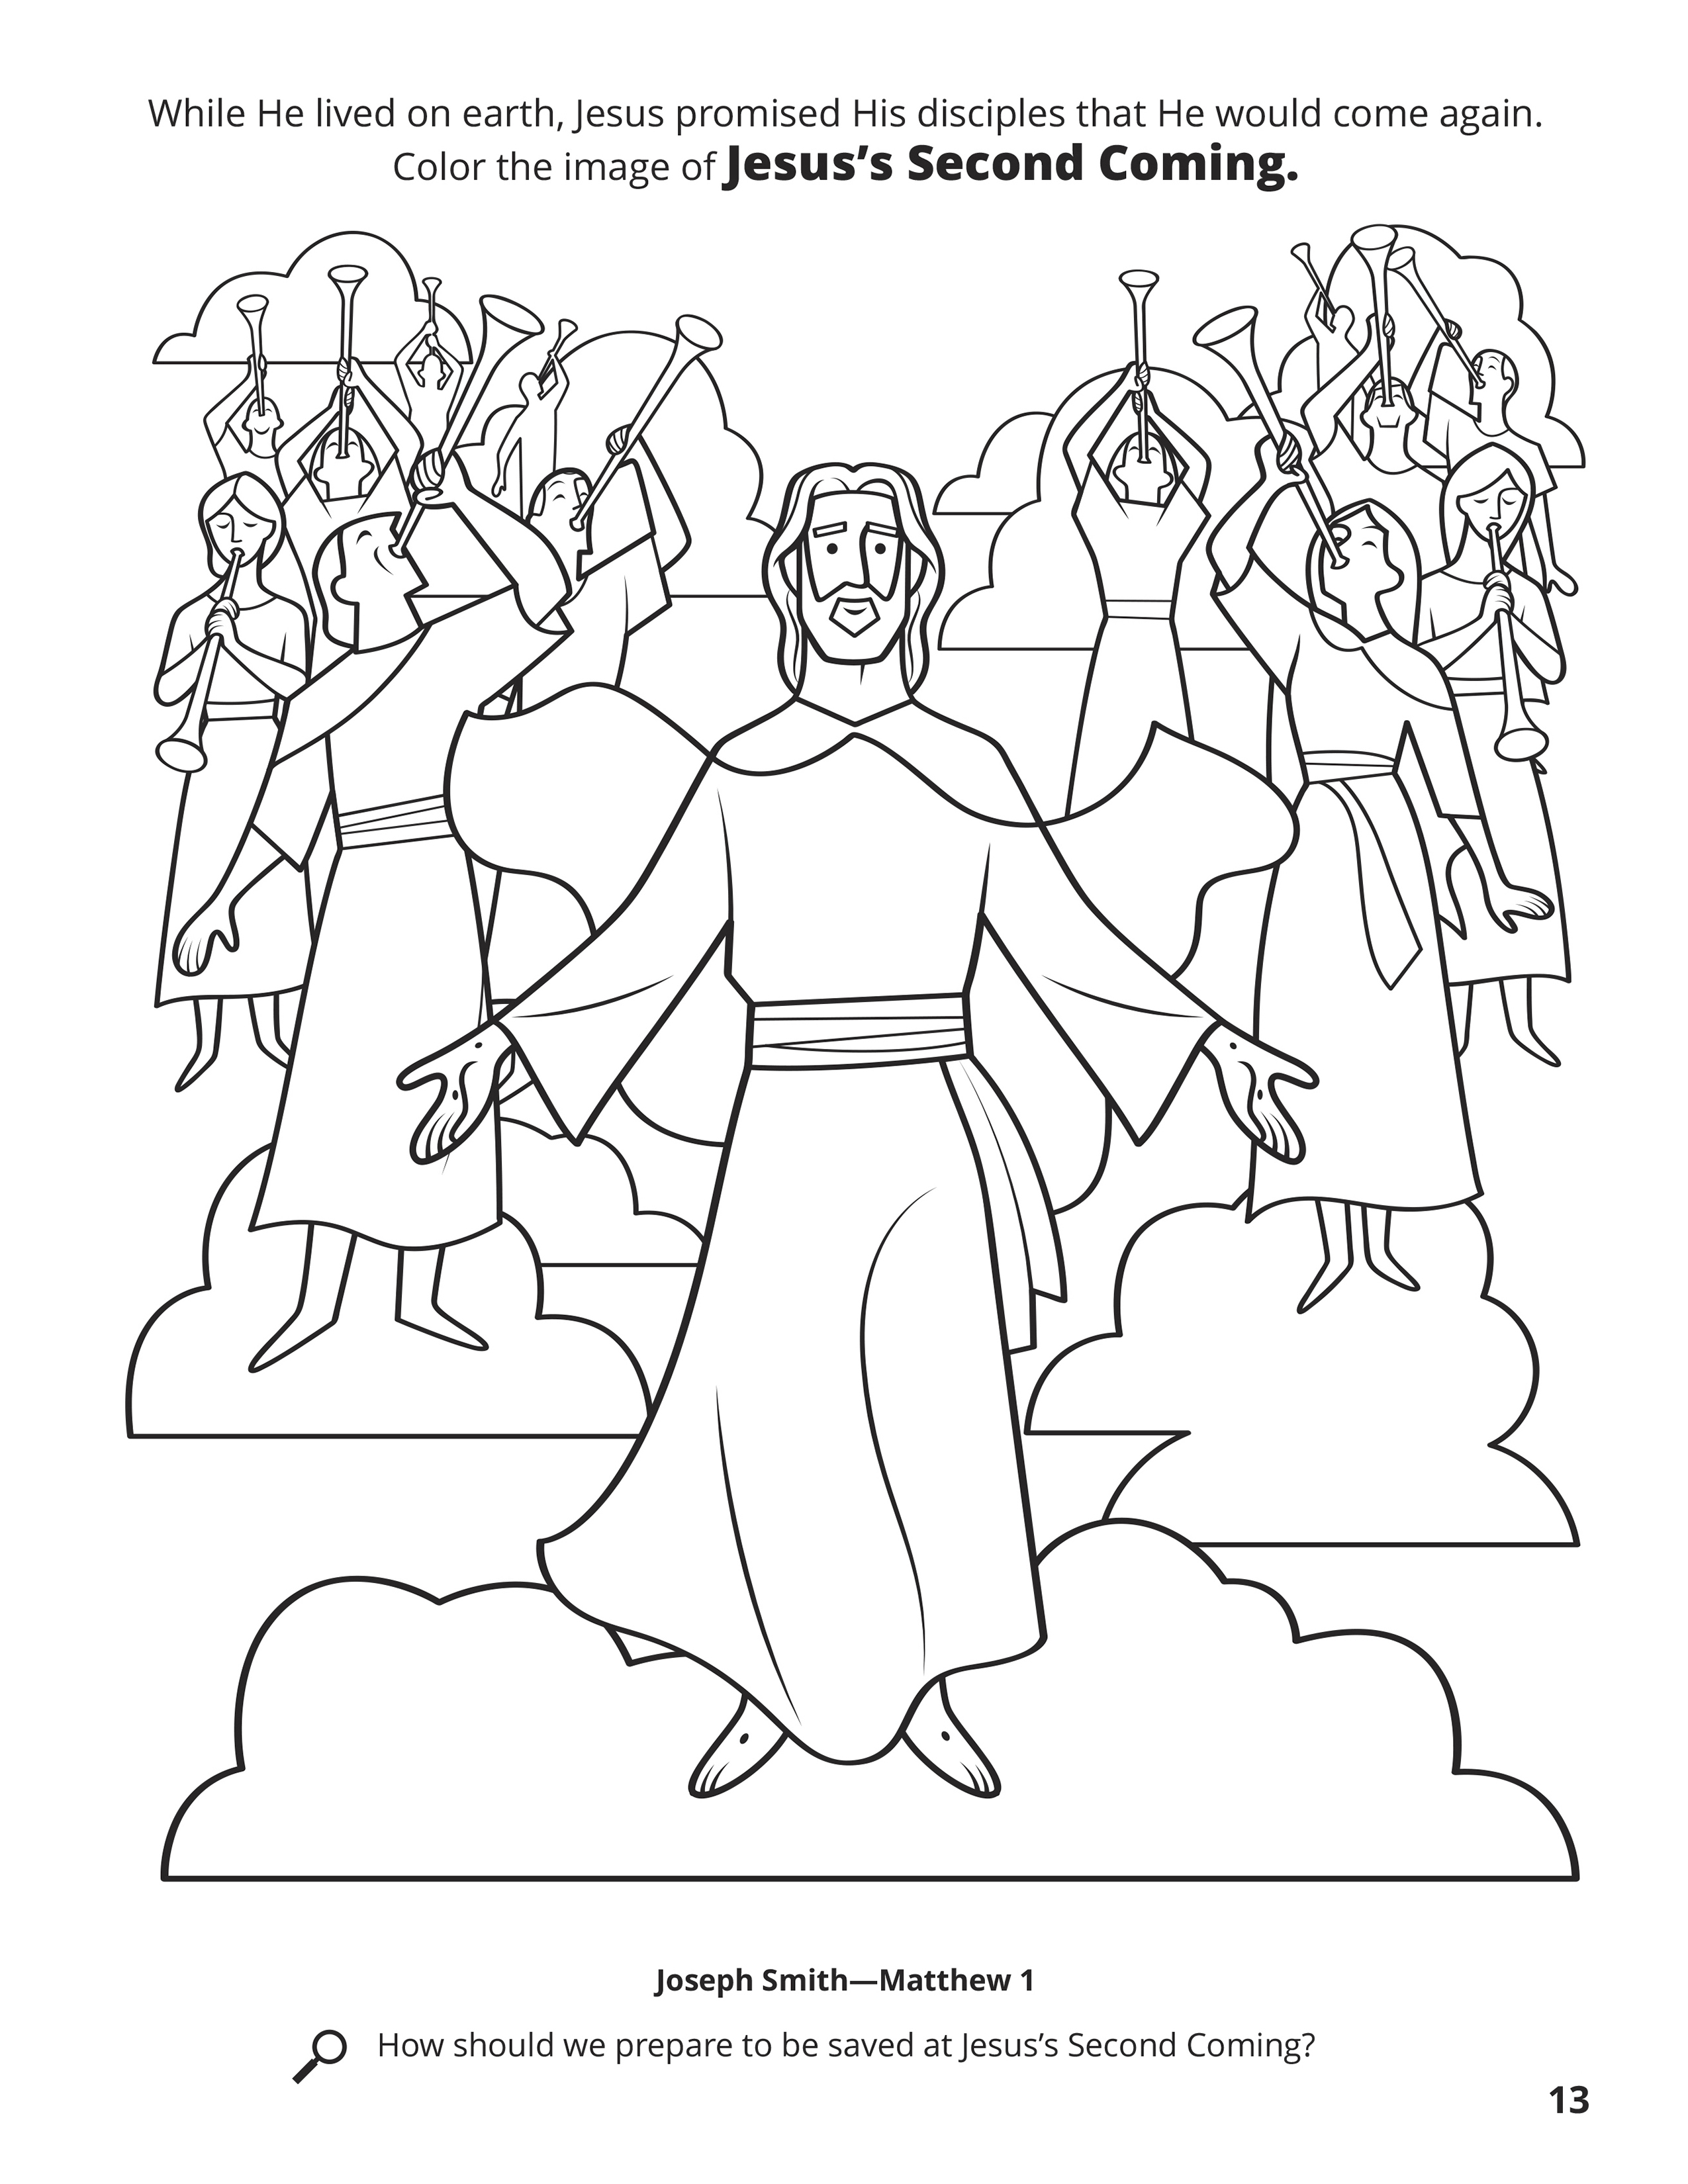 While He lived on earth, Jesus promised His disciples that He would come again. Color the image of Jesus's Second Coming. Location in the Scriptures: Joseph Smith—Matthew 1. Search the Scriptures: How should we prepare to be saved at Jesus's Second Coming?